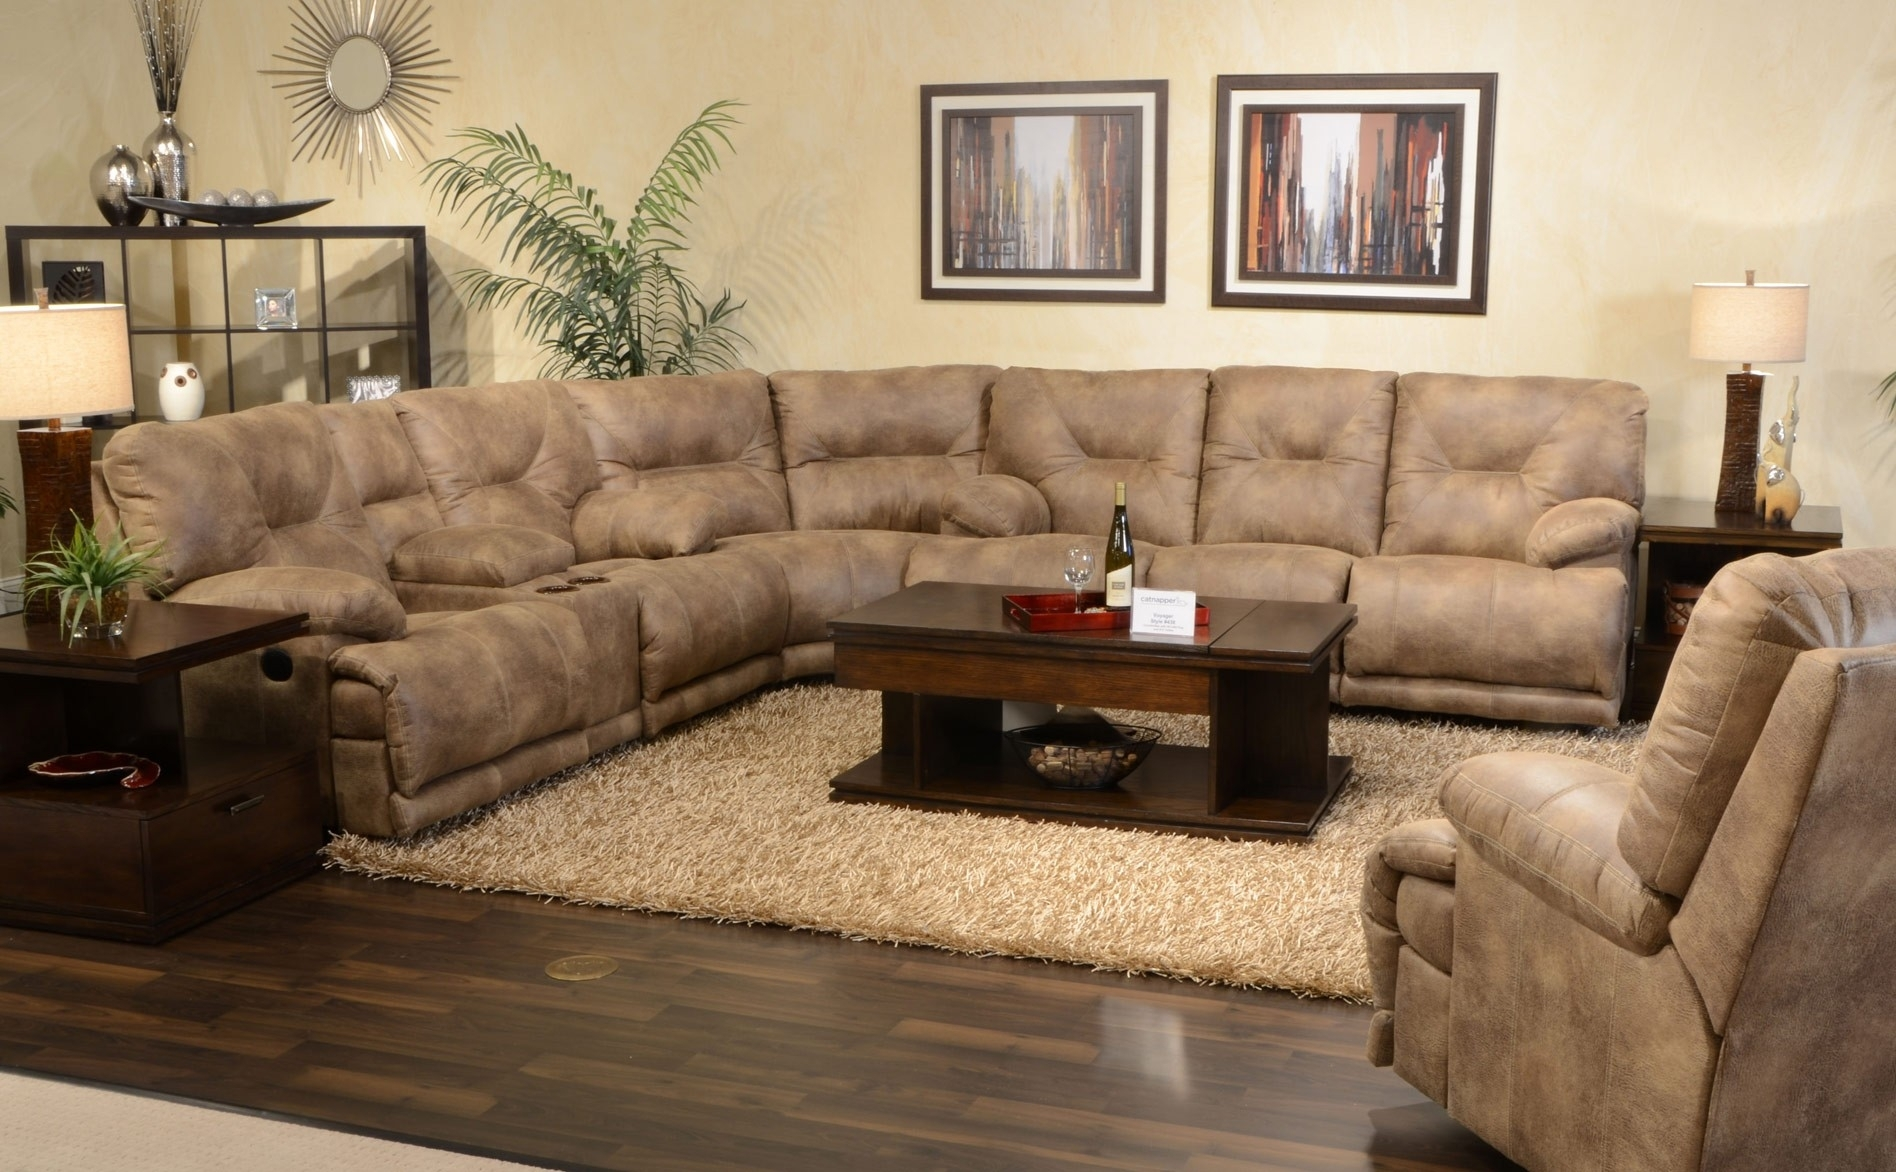 barcelona sectional sofa ottoman younger furniture reviews 10 inspirations sofas for small doorways